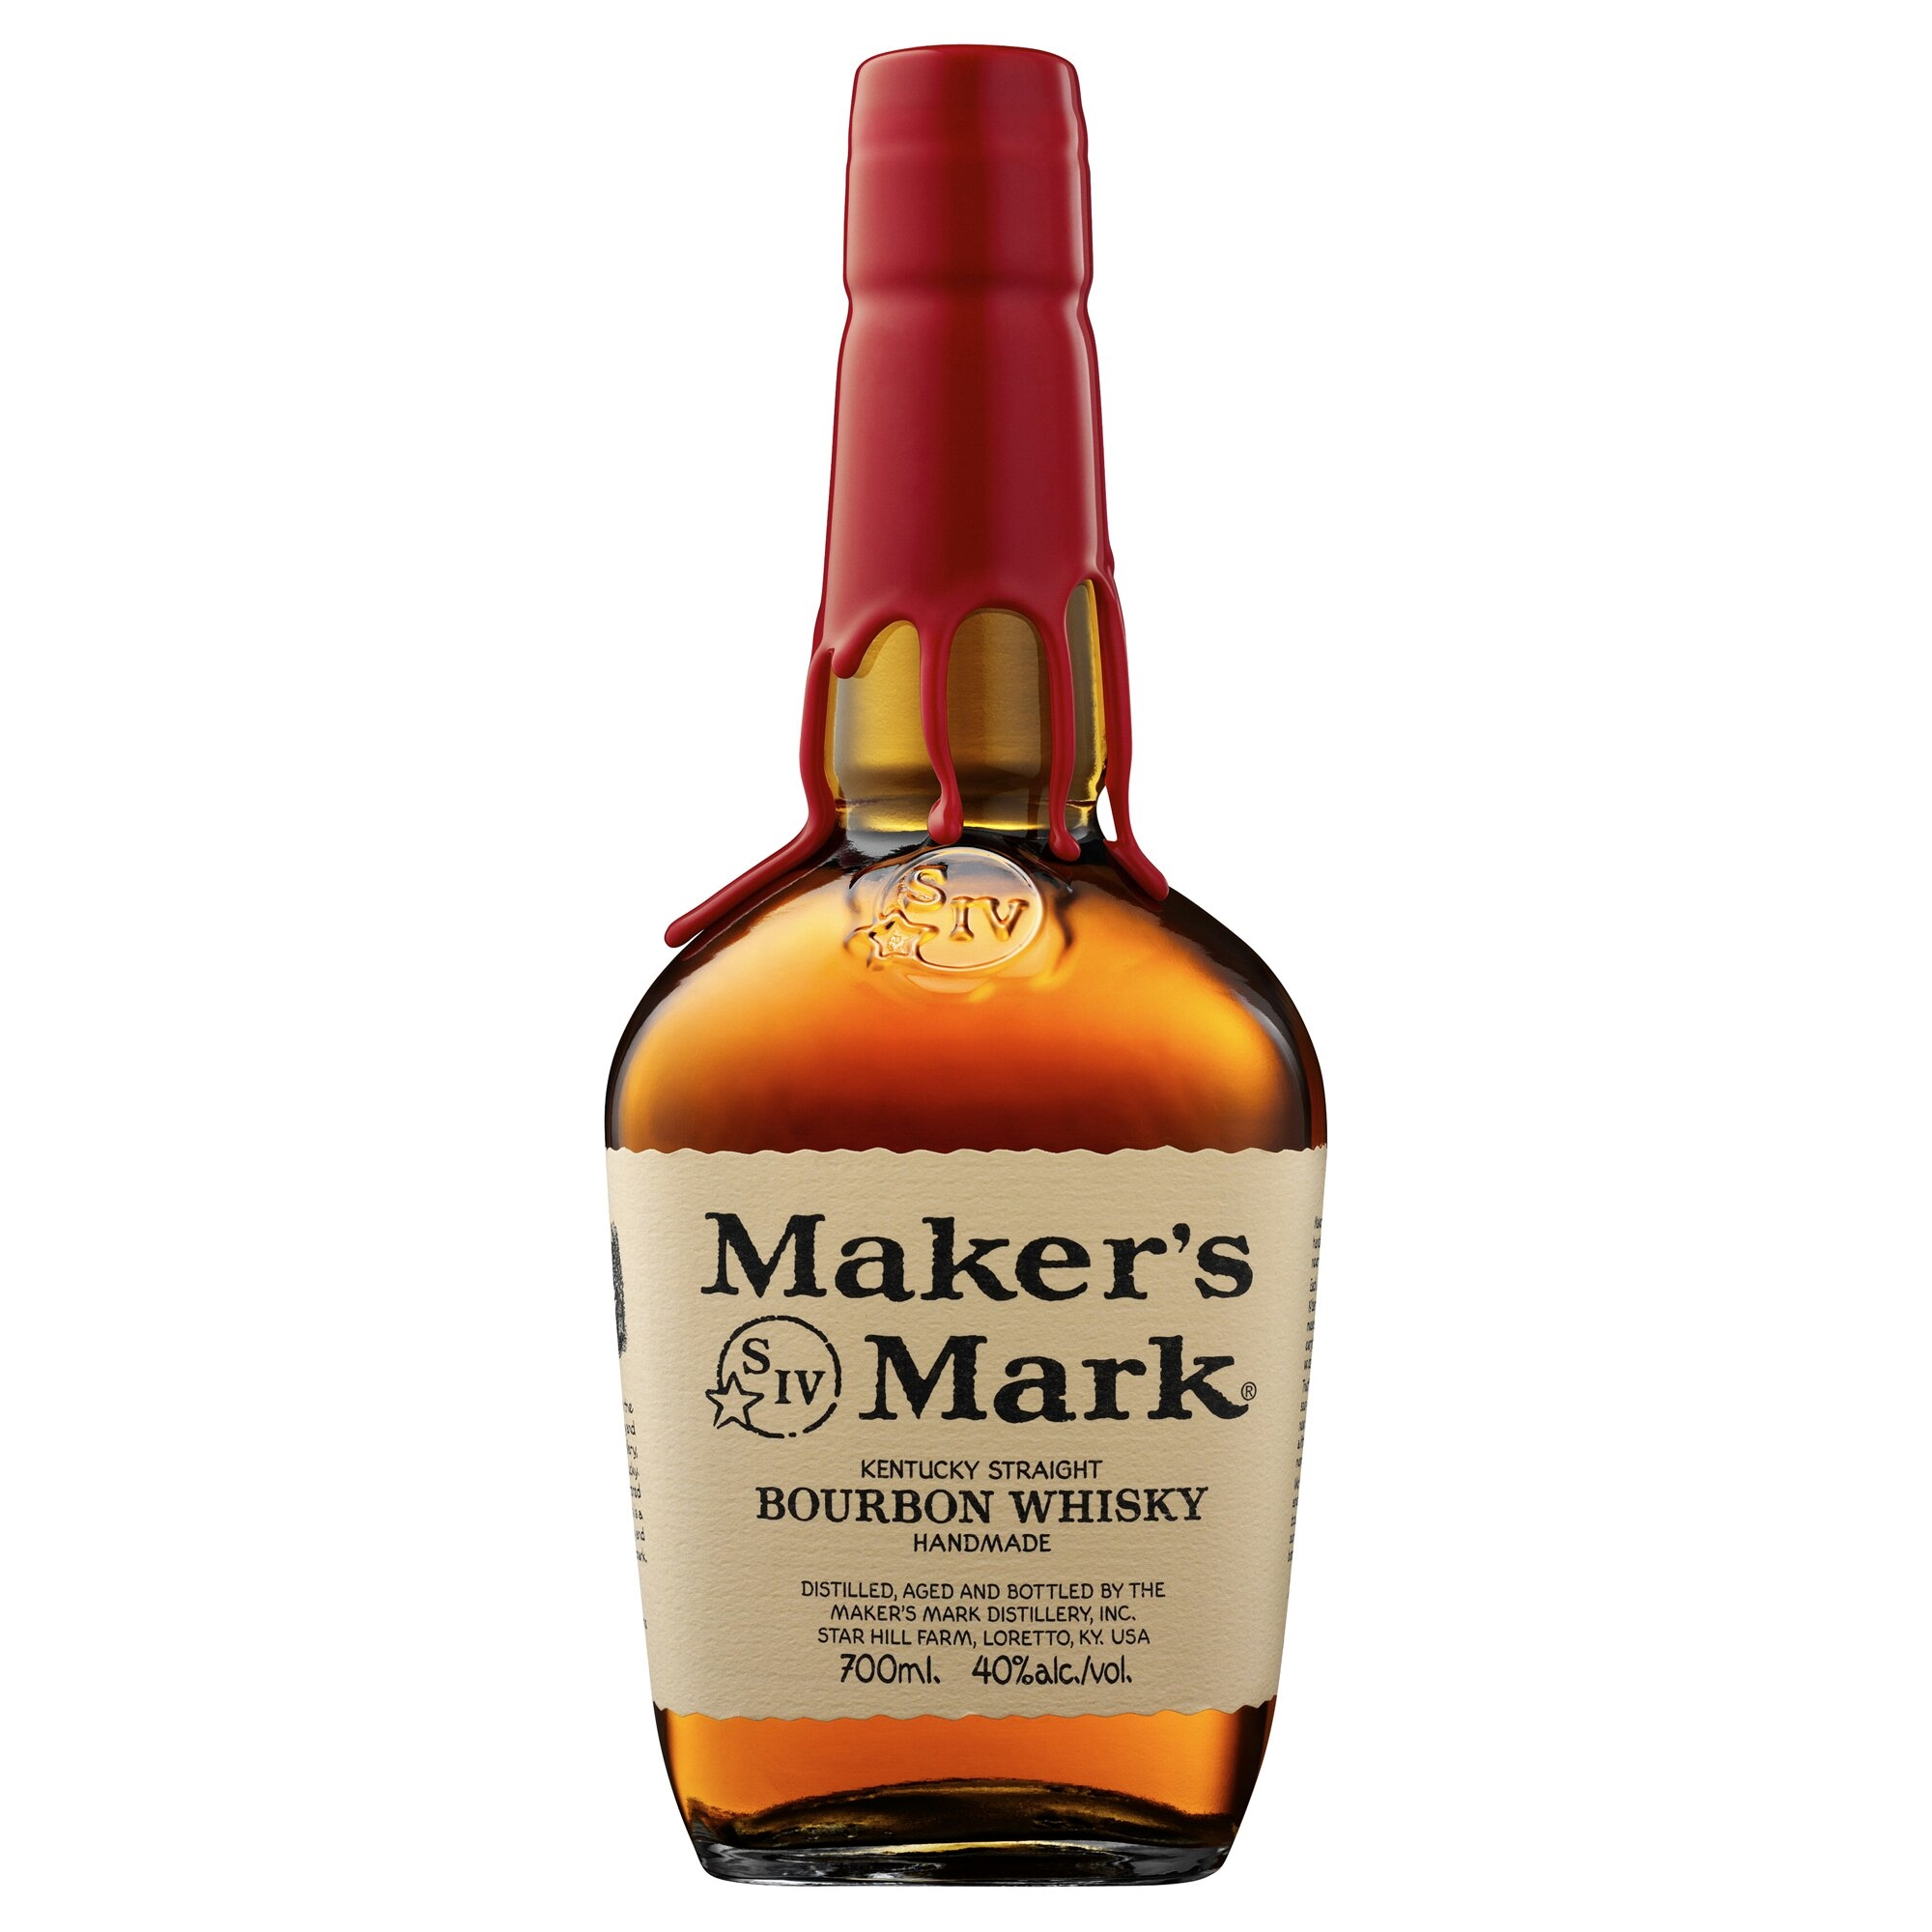 Maker's Mark Bourbon Whiskey 750ml   on sale/ was 30.99   Only $26.99 Now